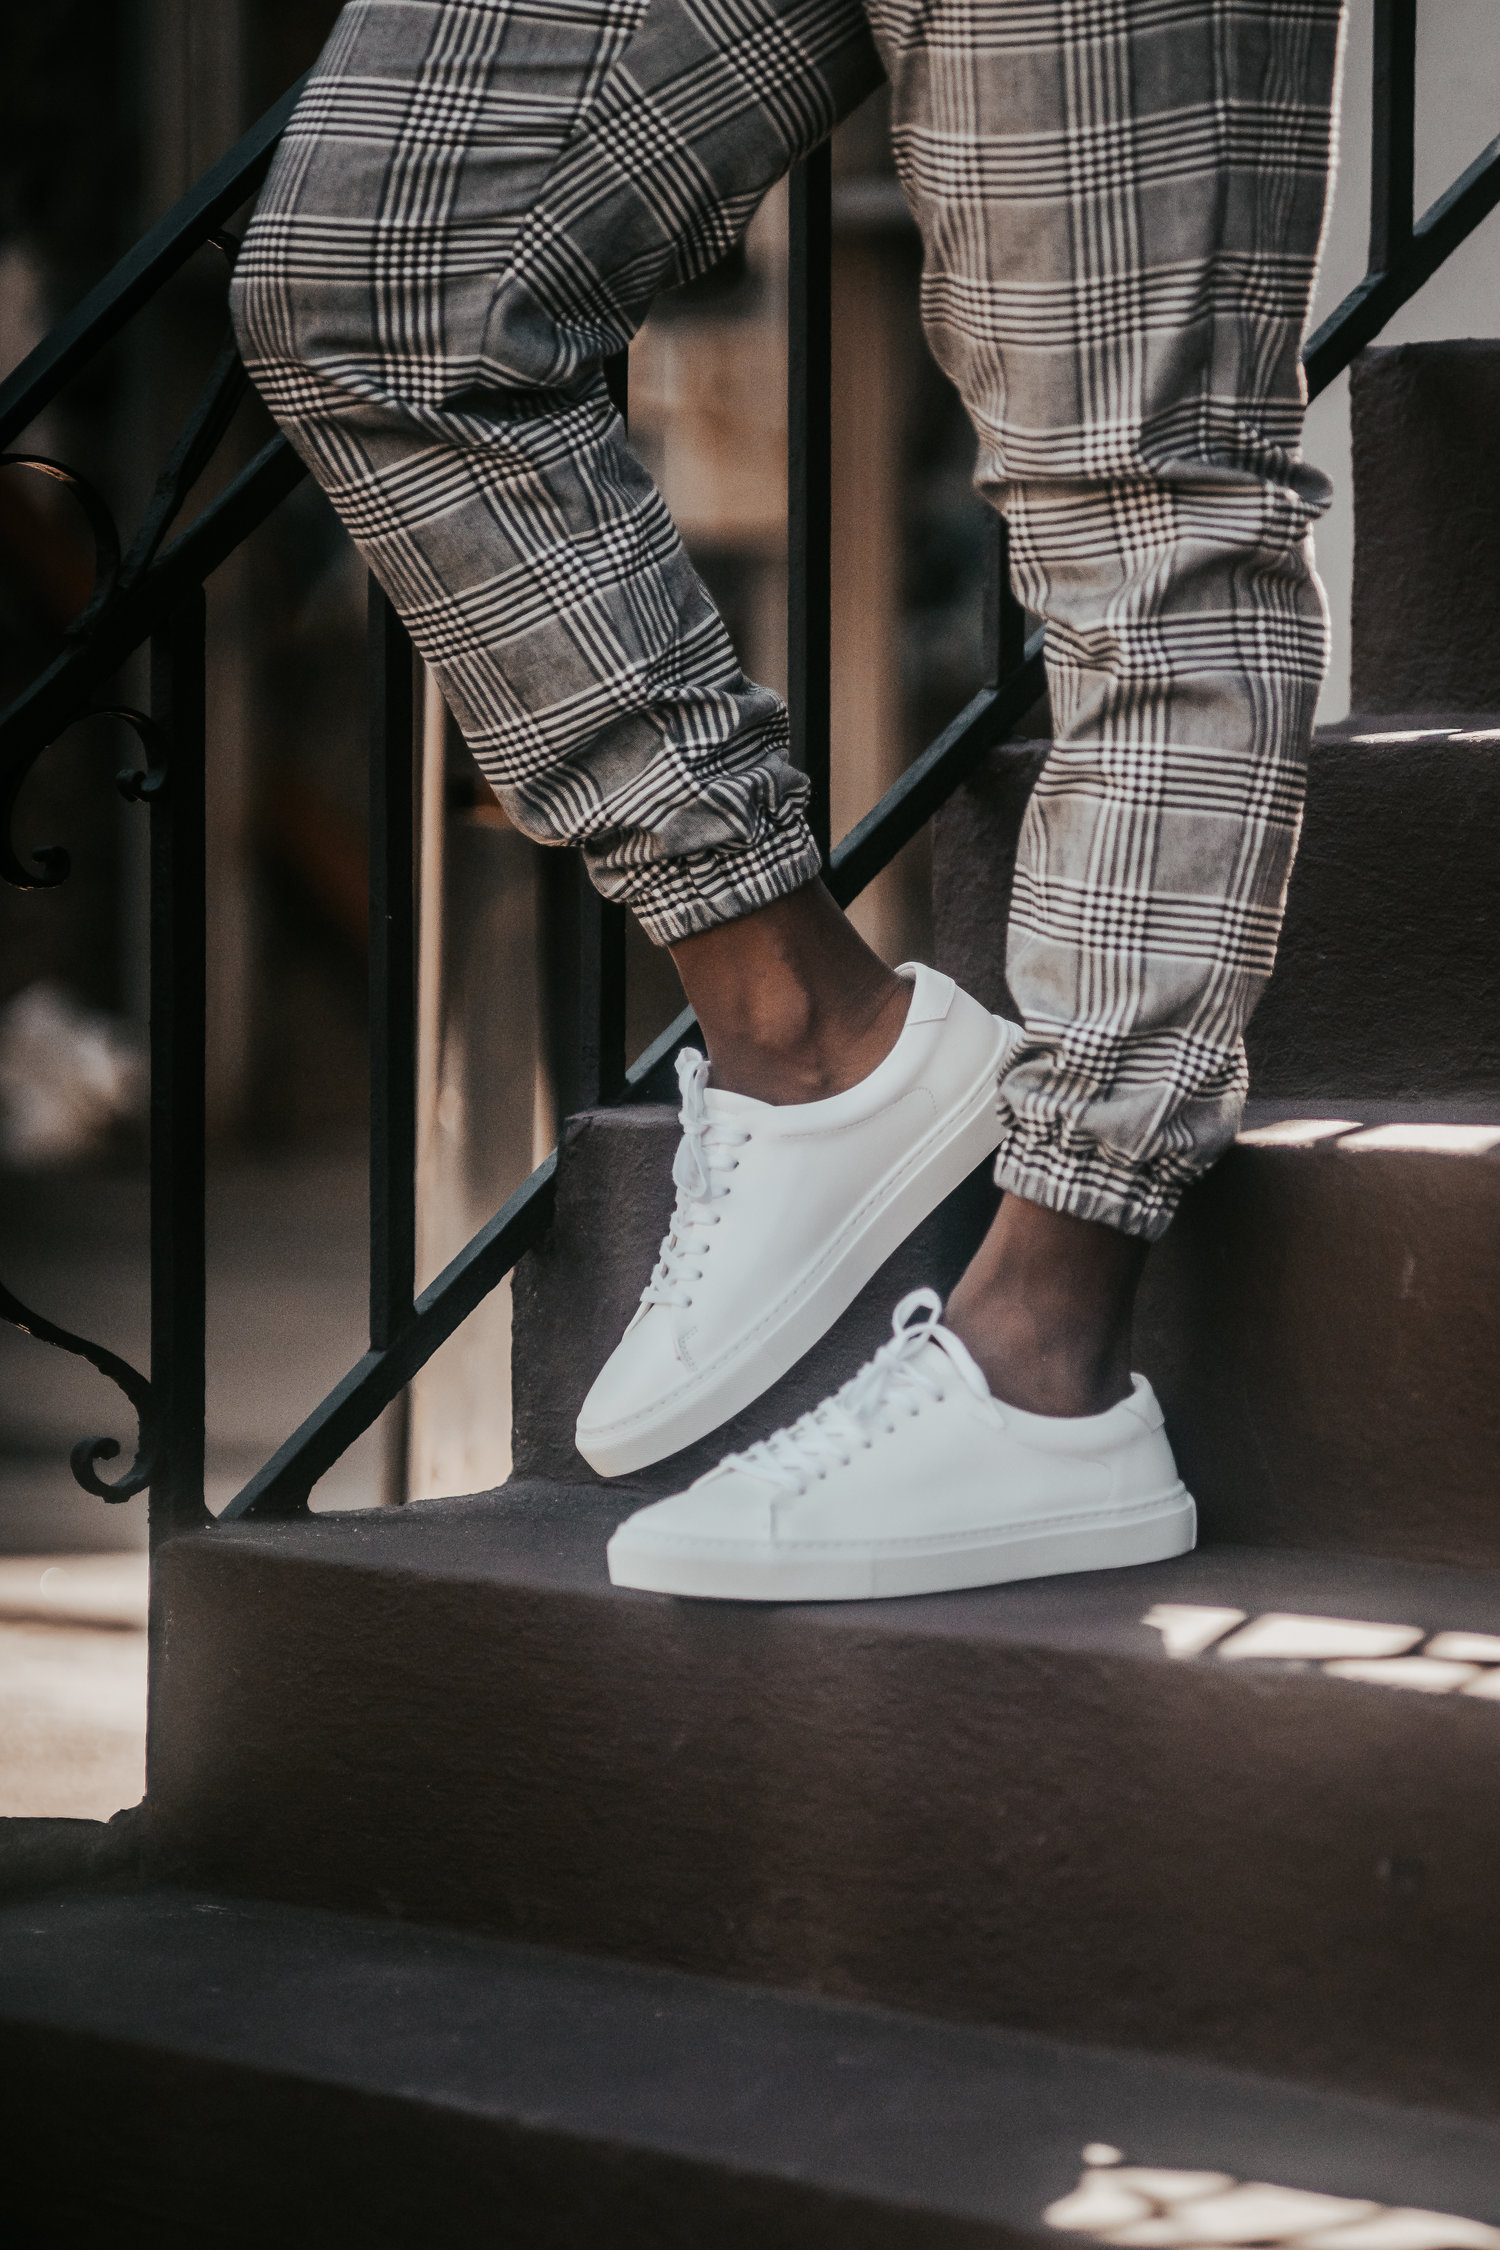 @orlandoxbuddle's cover photo for 'REVIEW & STYLE: BECKETT SIMONON REID SNEAKERS — ORLANDO X BUDDLE'